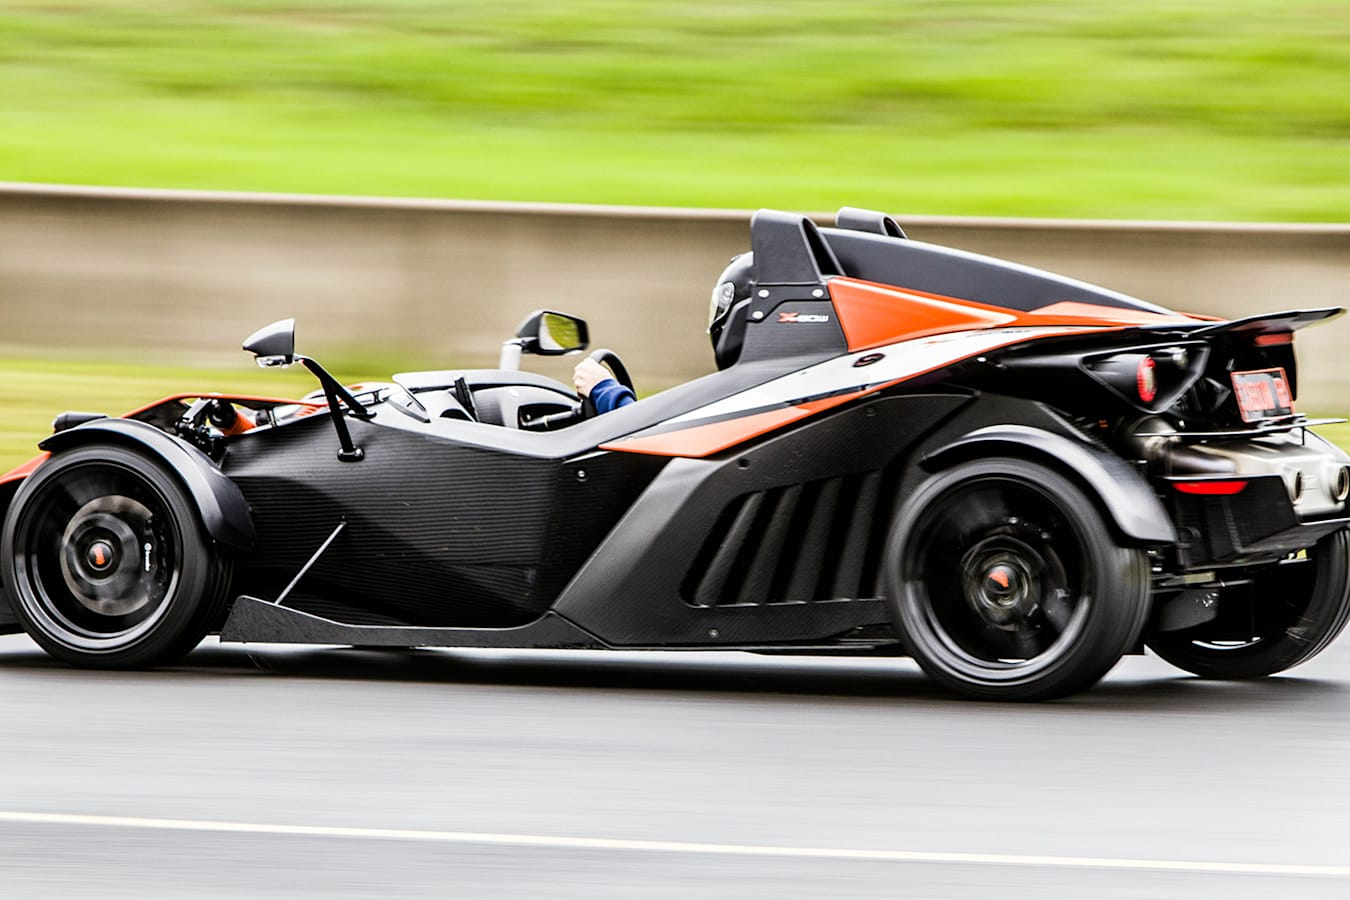 Gallery KTM X Bow R New Sports Car From Simply Sports Cars Sydney Burrows Drive Day 9 Jpg